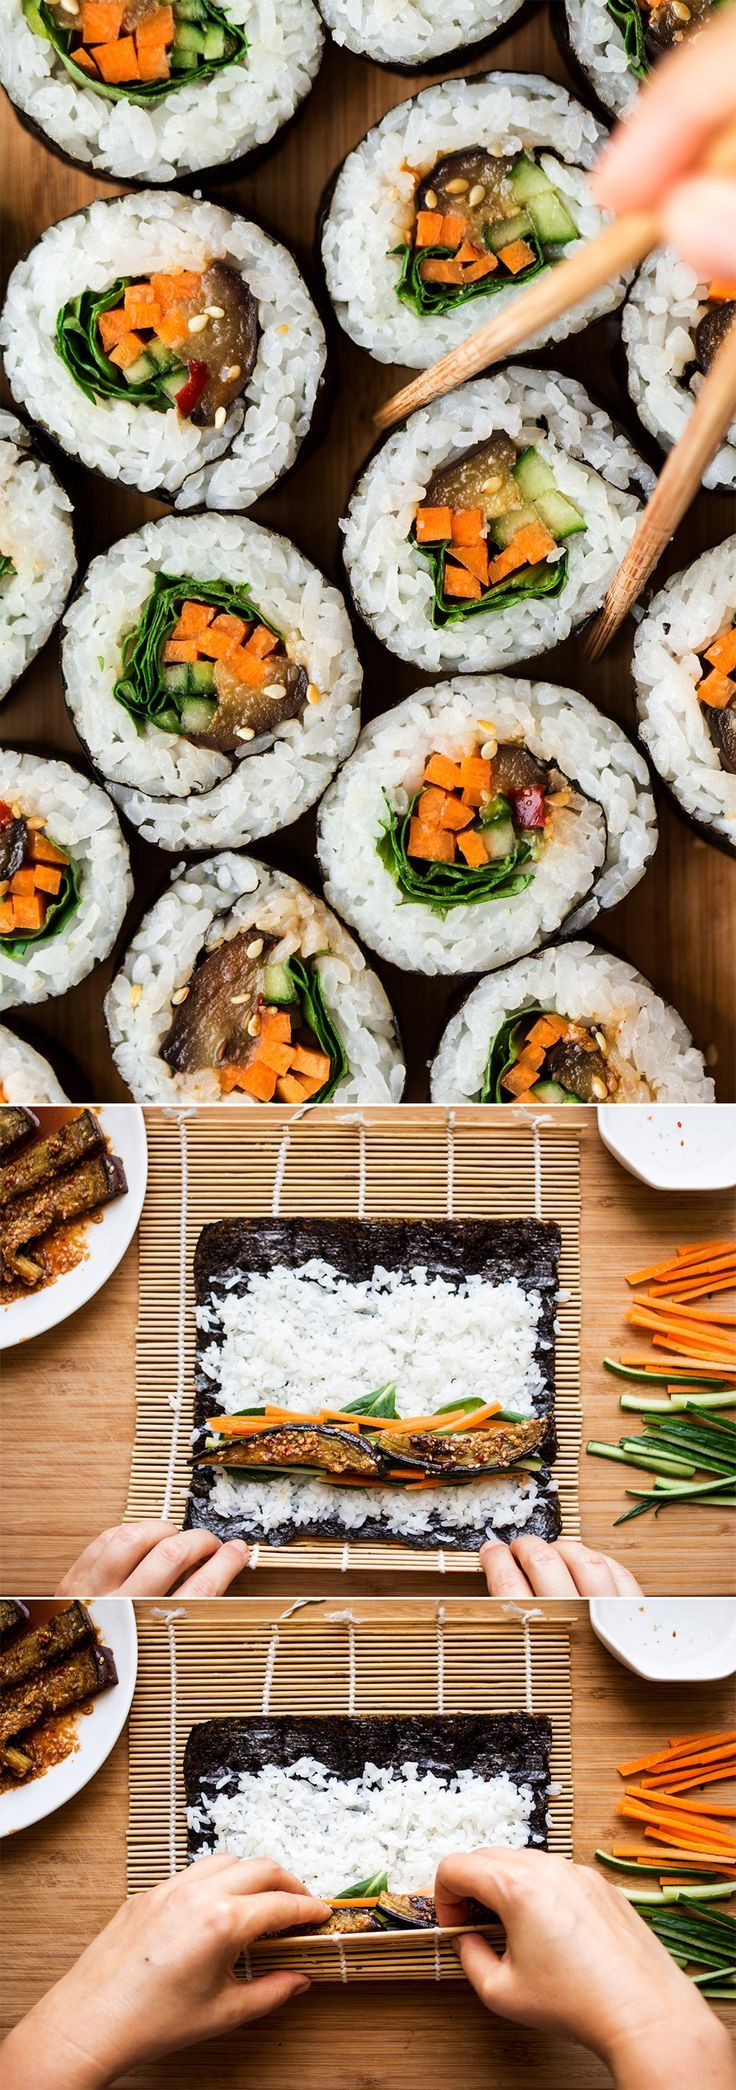 If you want to up your sushi game, try our sesame eggplant sushi. It tastes delicious and it's a great way to use up your eggplants. Vegan & gluten-free.